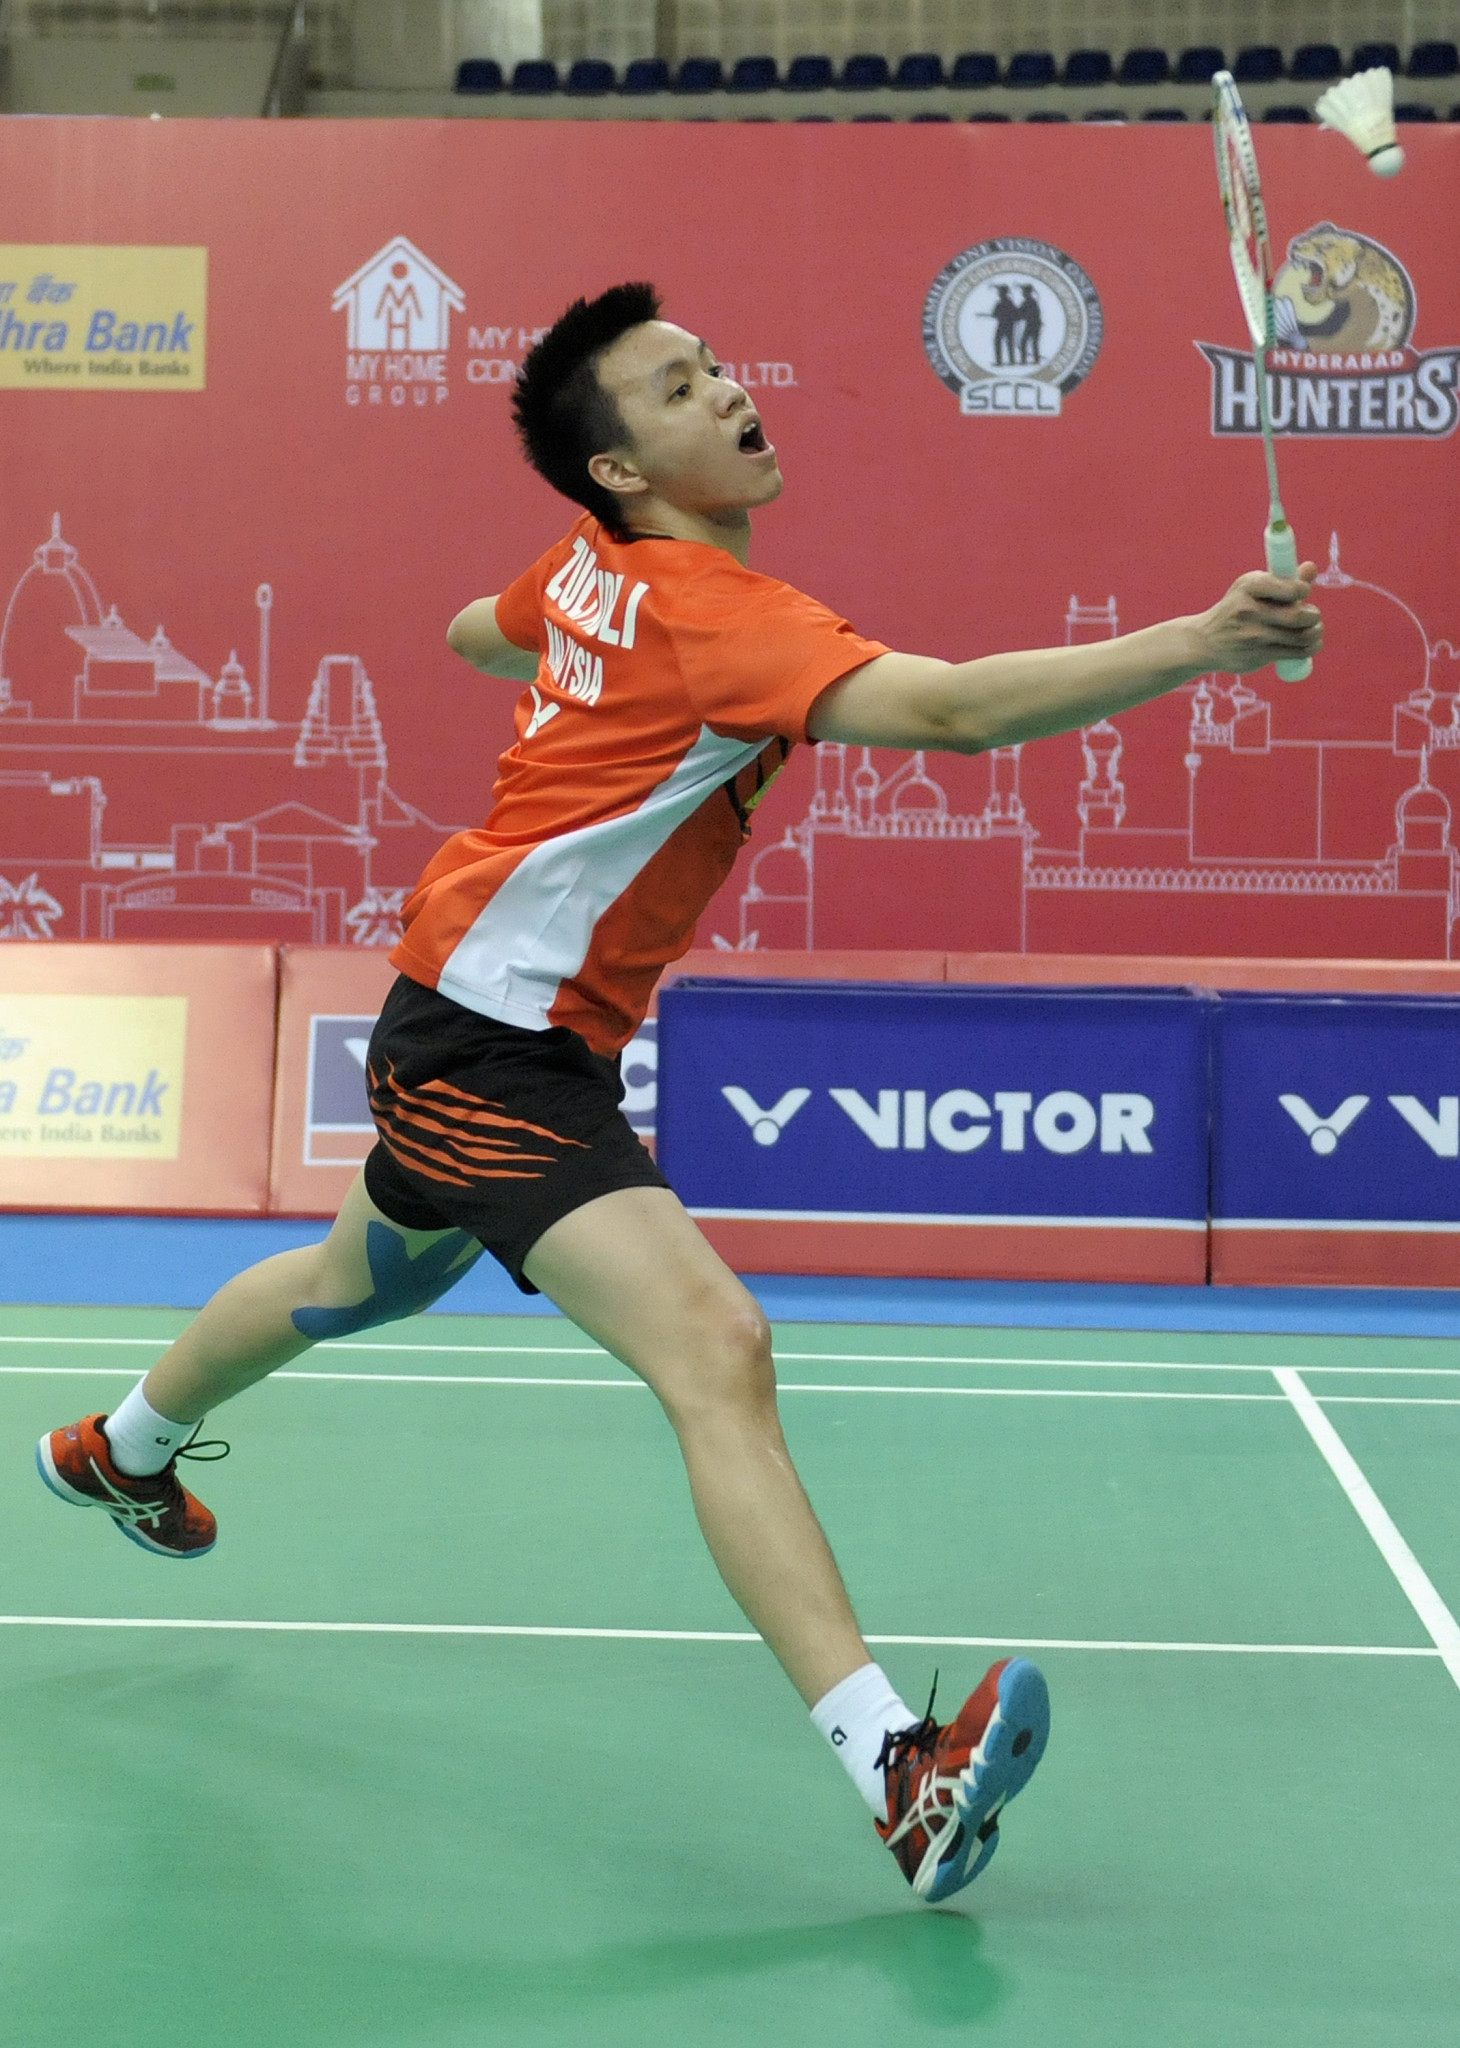 Malaysian badminton players lose appeals against career-ending bans for match fixing